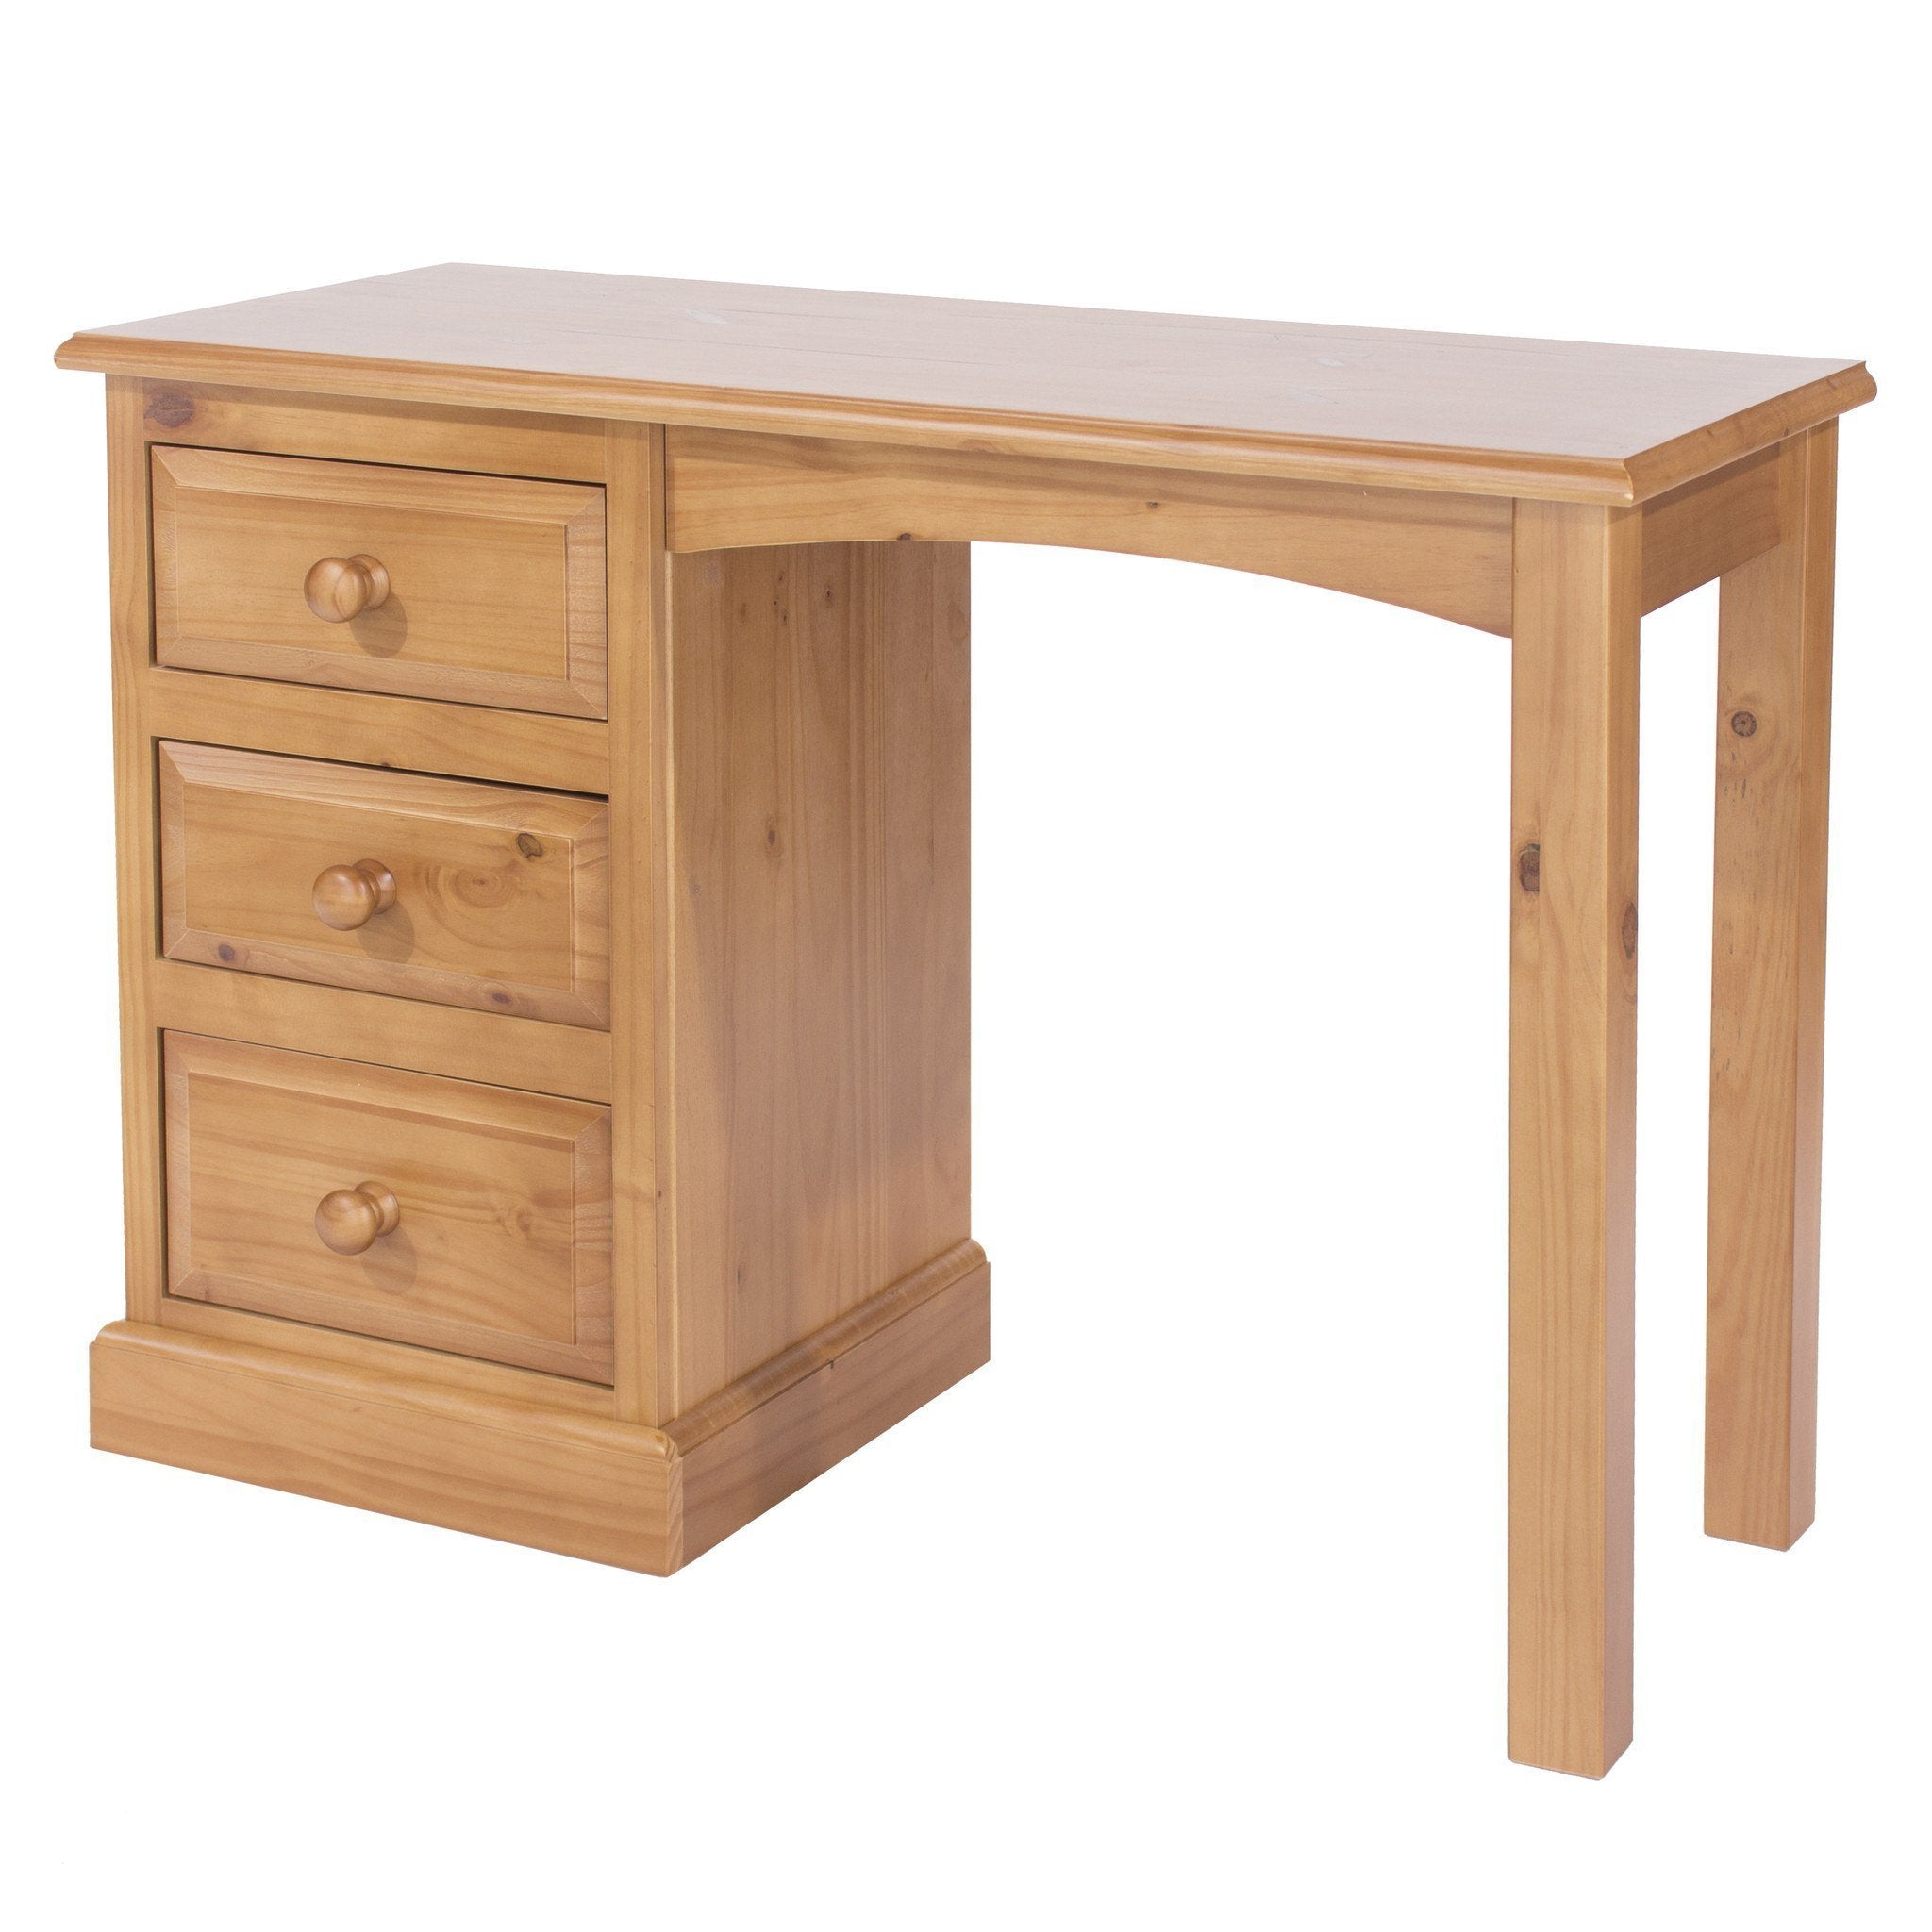 Norton Pine Single Pedestal Dressing Table-pine Dressing Tables-core products-GoFurn Furniture Store Kent